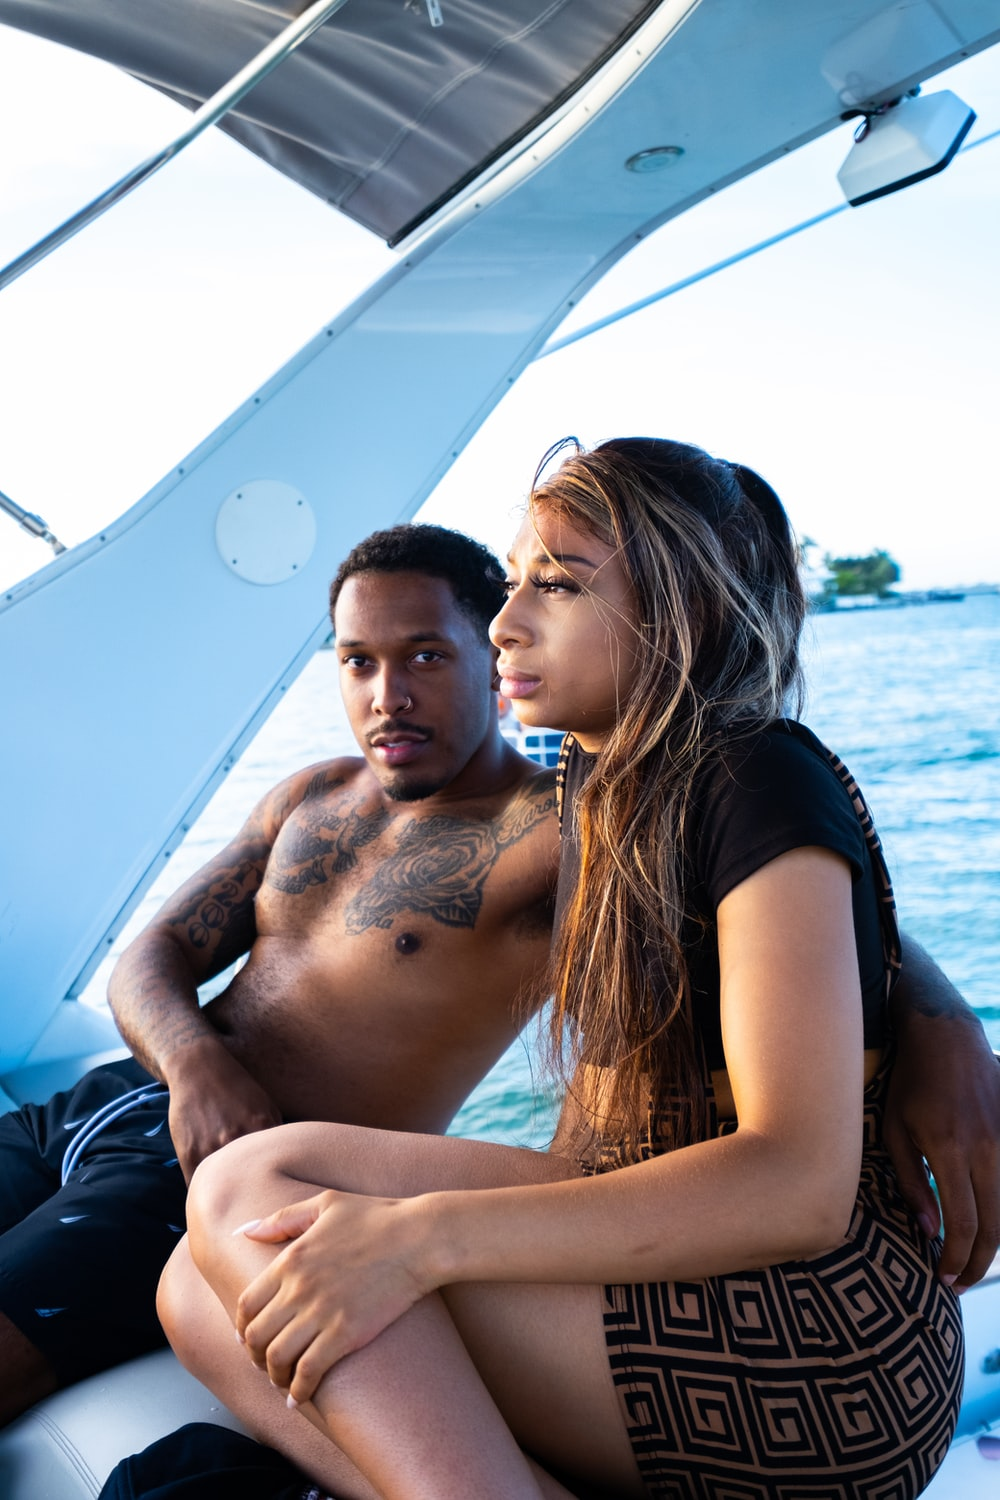 man and woman kissing on boat during daytime